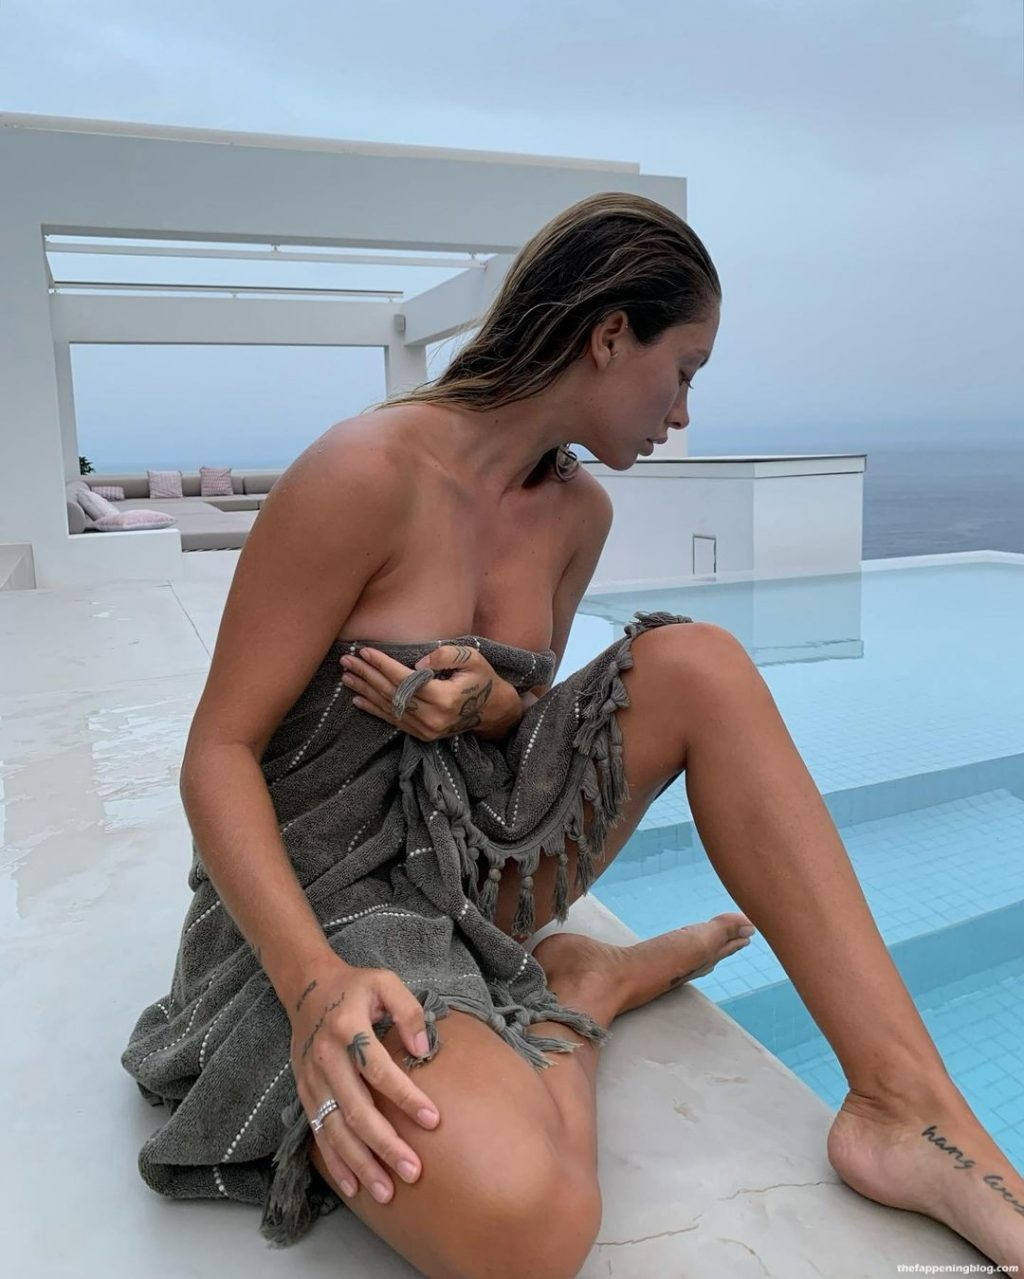 Pauline Tantot Poses Topless in The Pool (3 Photos)